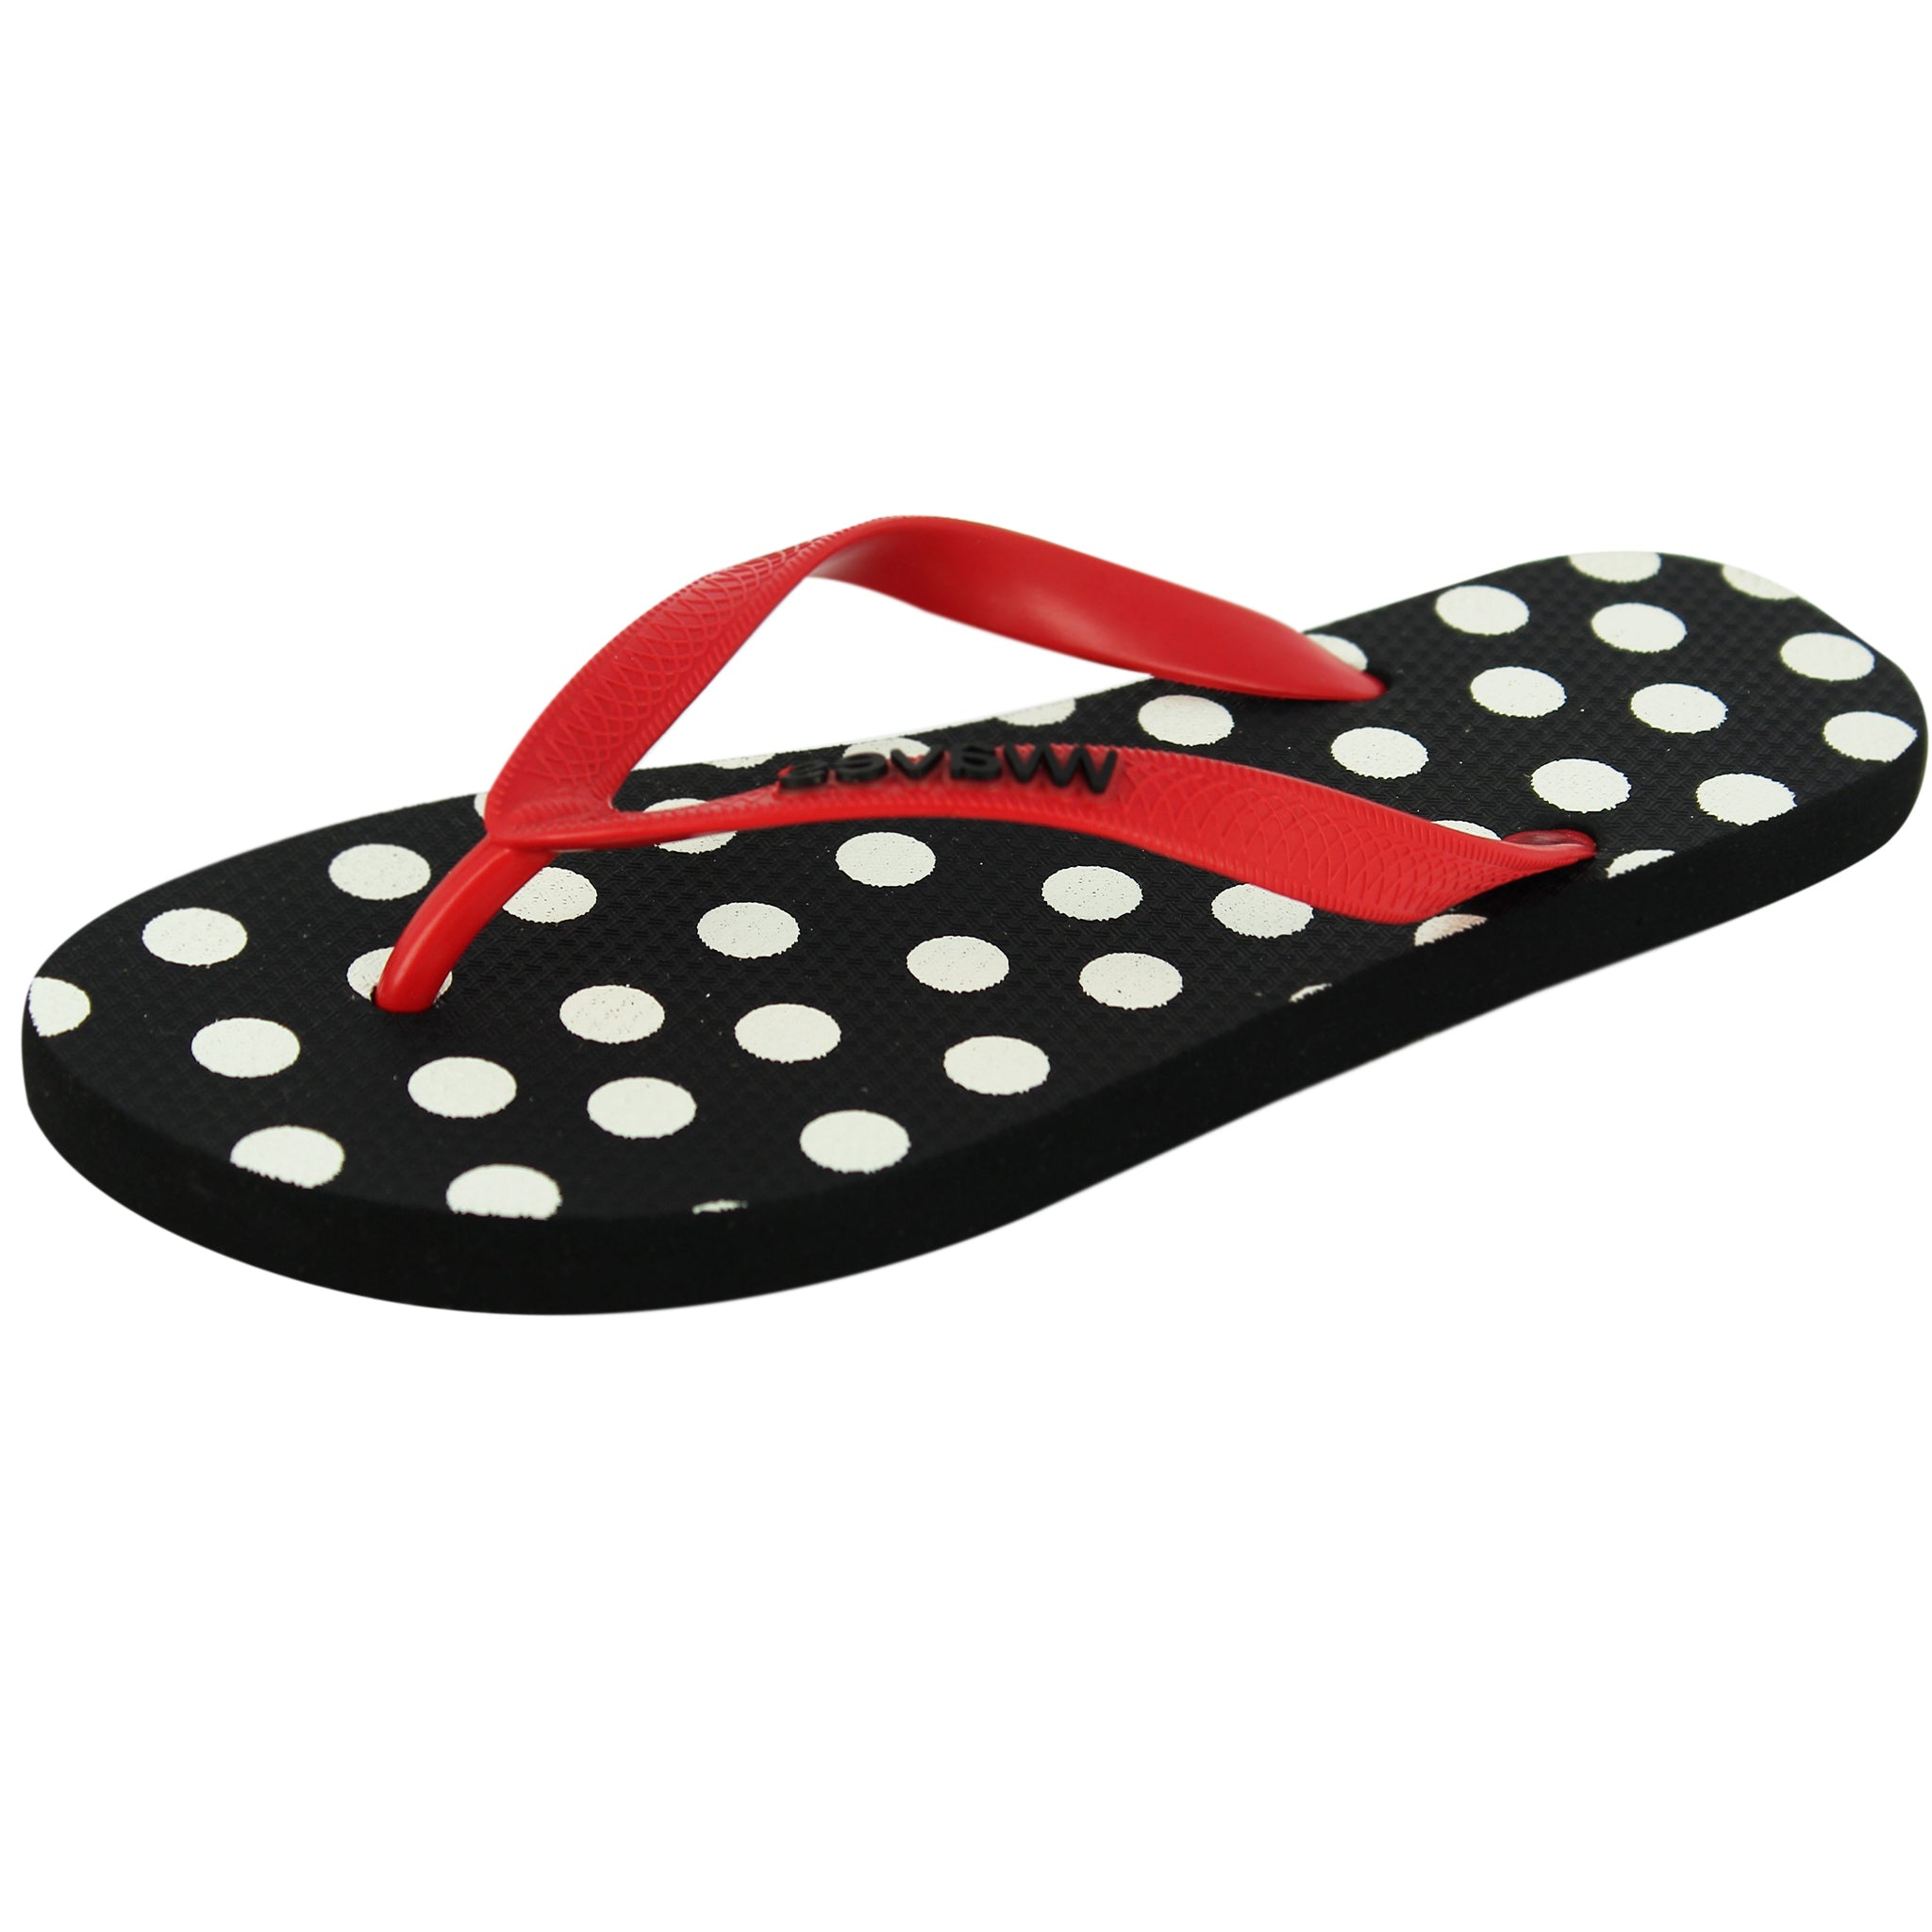 Black and White Polka Dot Flip Flops, Women's